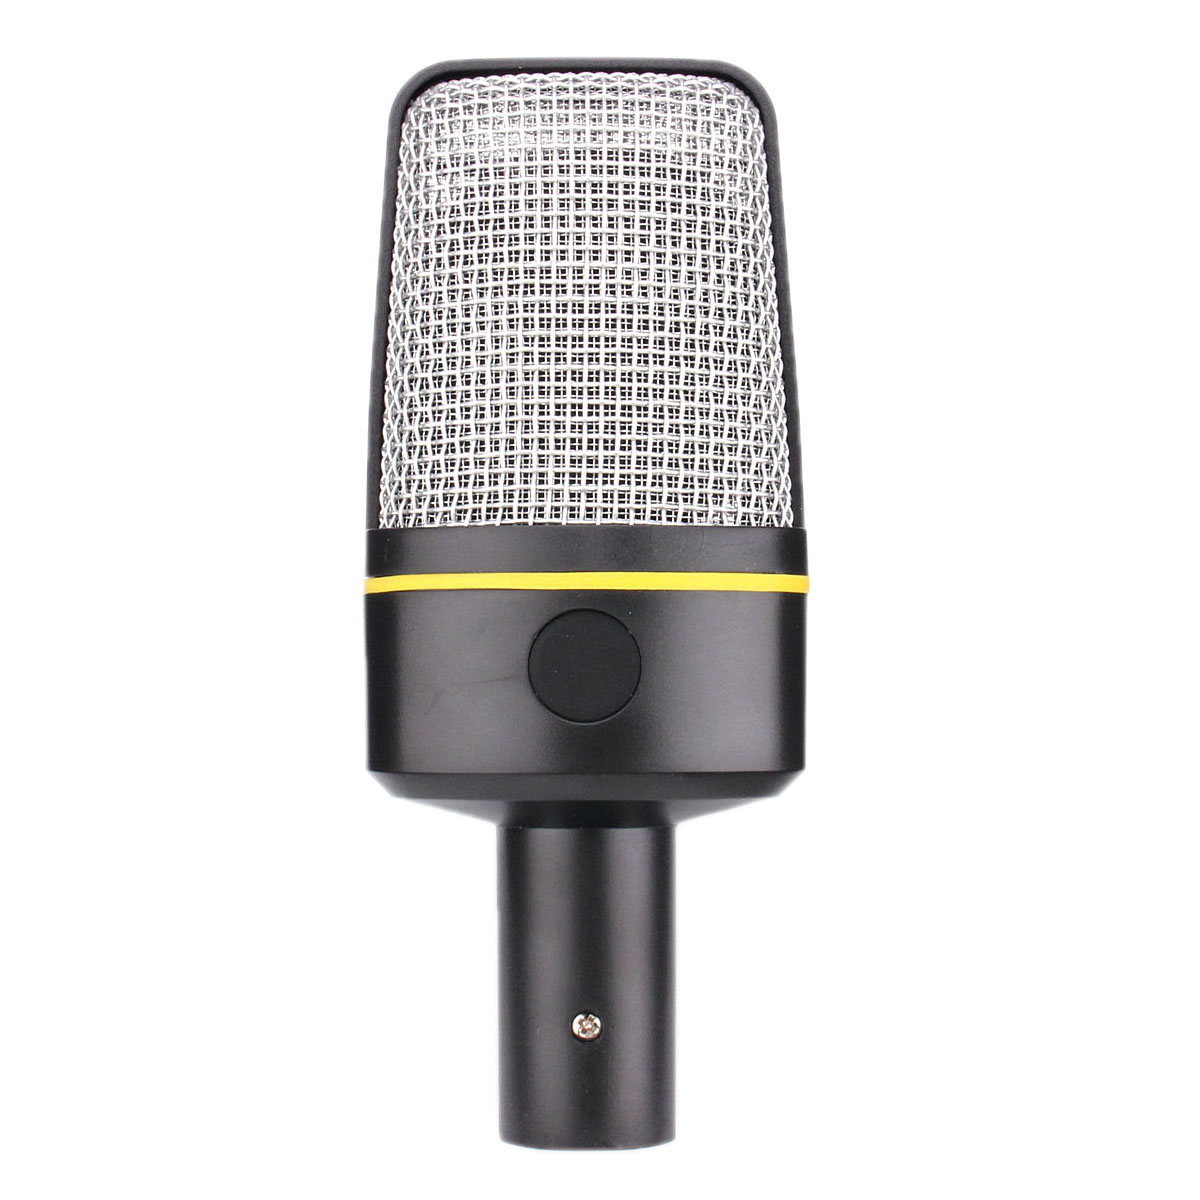 msn skype chant enregistrement 3 5 mm condensateur microphone micro pour ordinateur portable pc. Black Bedroom Furniture Sets. Home Design Ideas